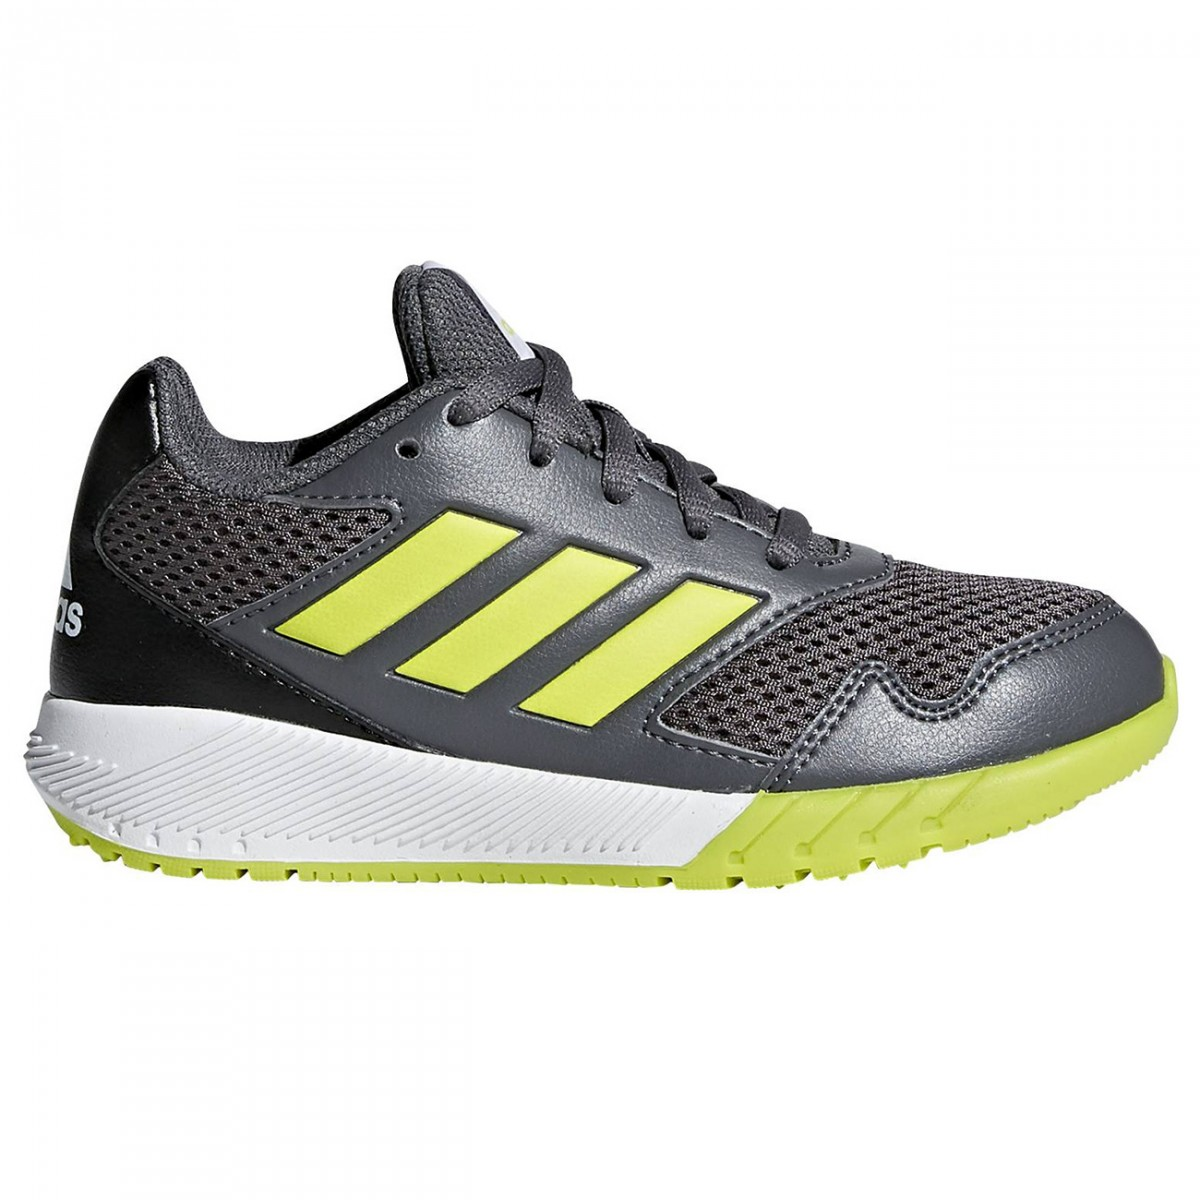 chaussures running adidas altarun gar on chaussures sport. Black Bedroom Furniture Sets. Home Design Ideas